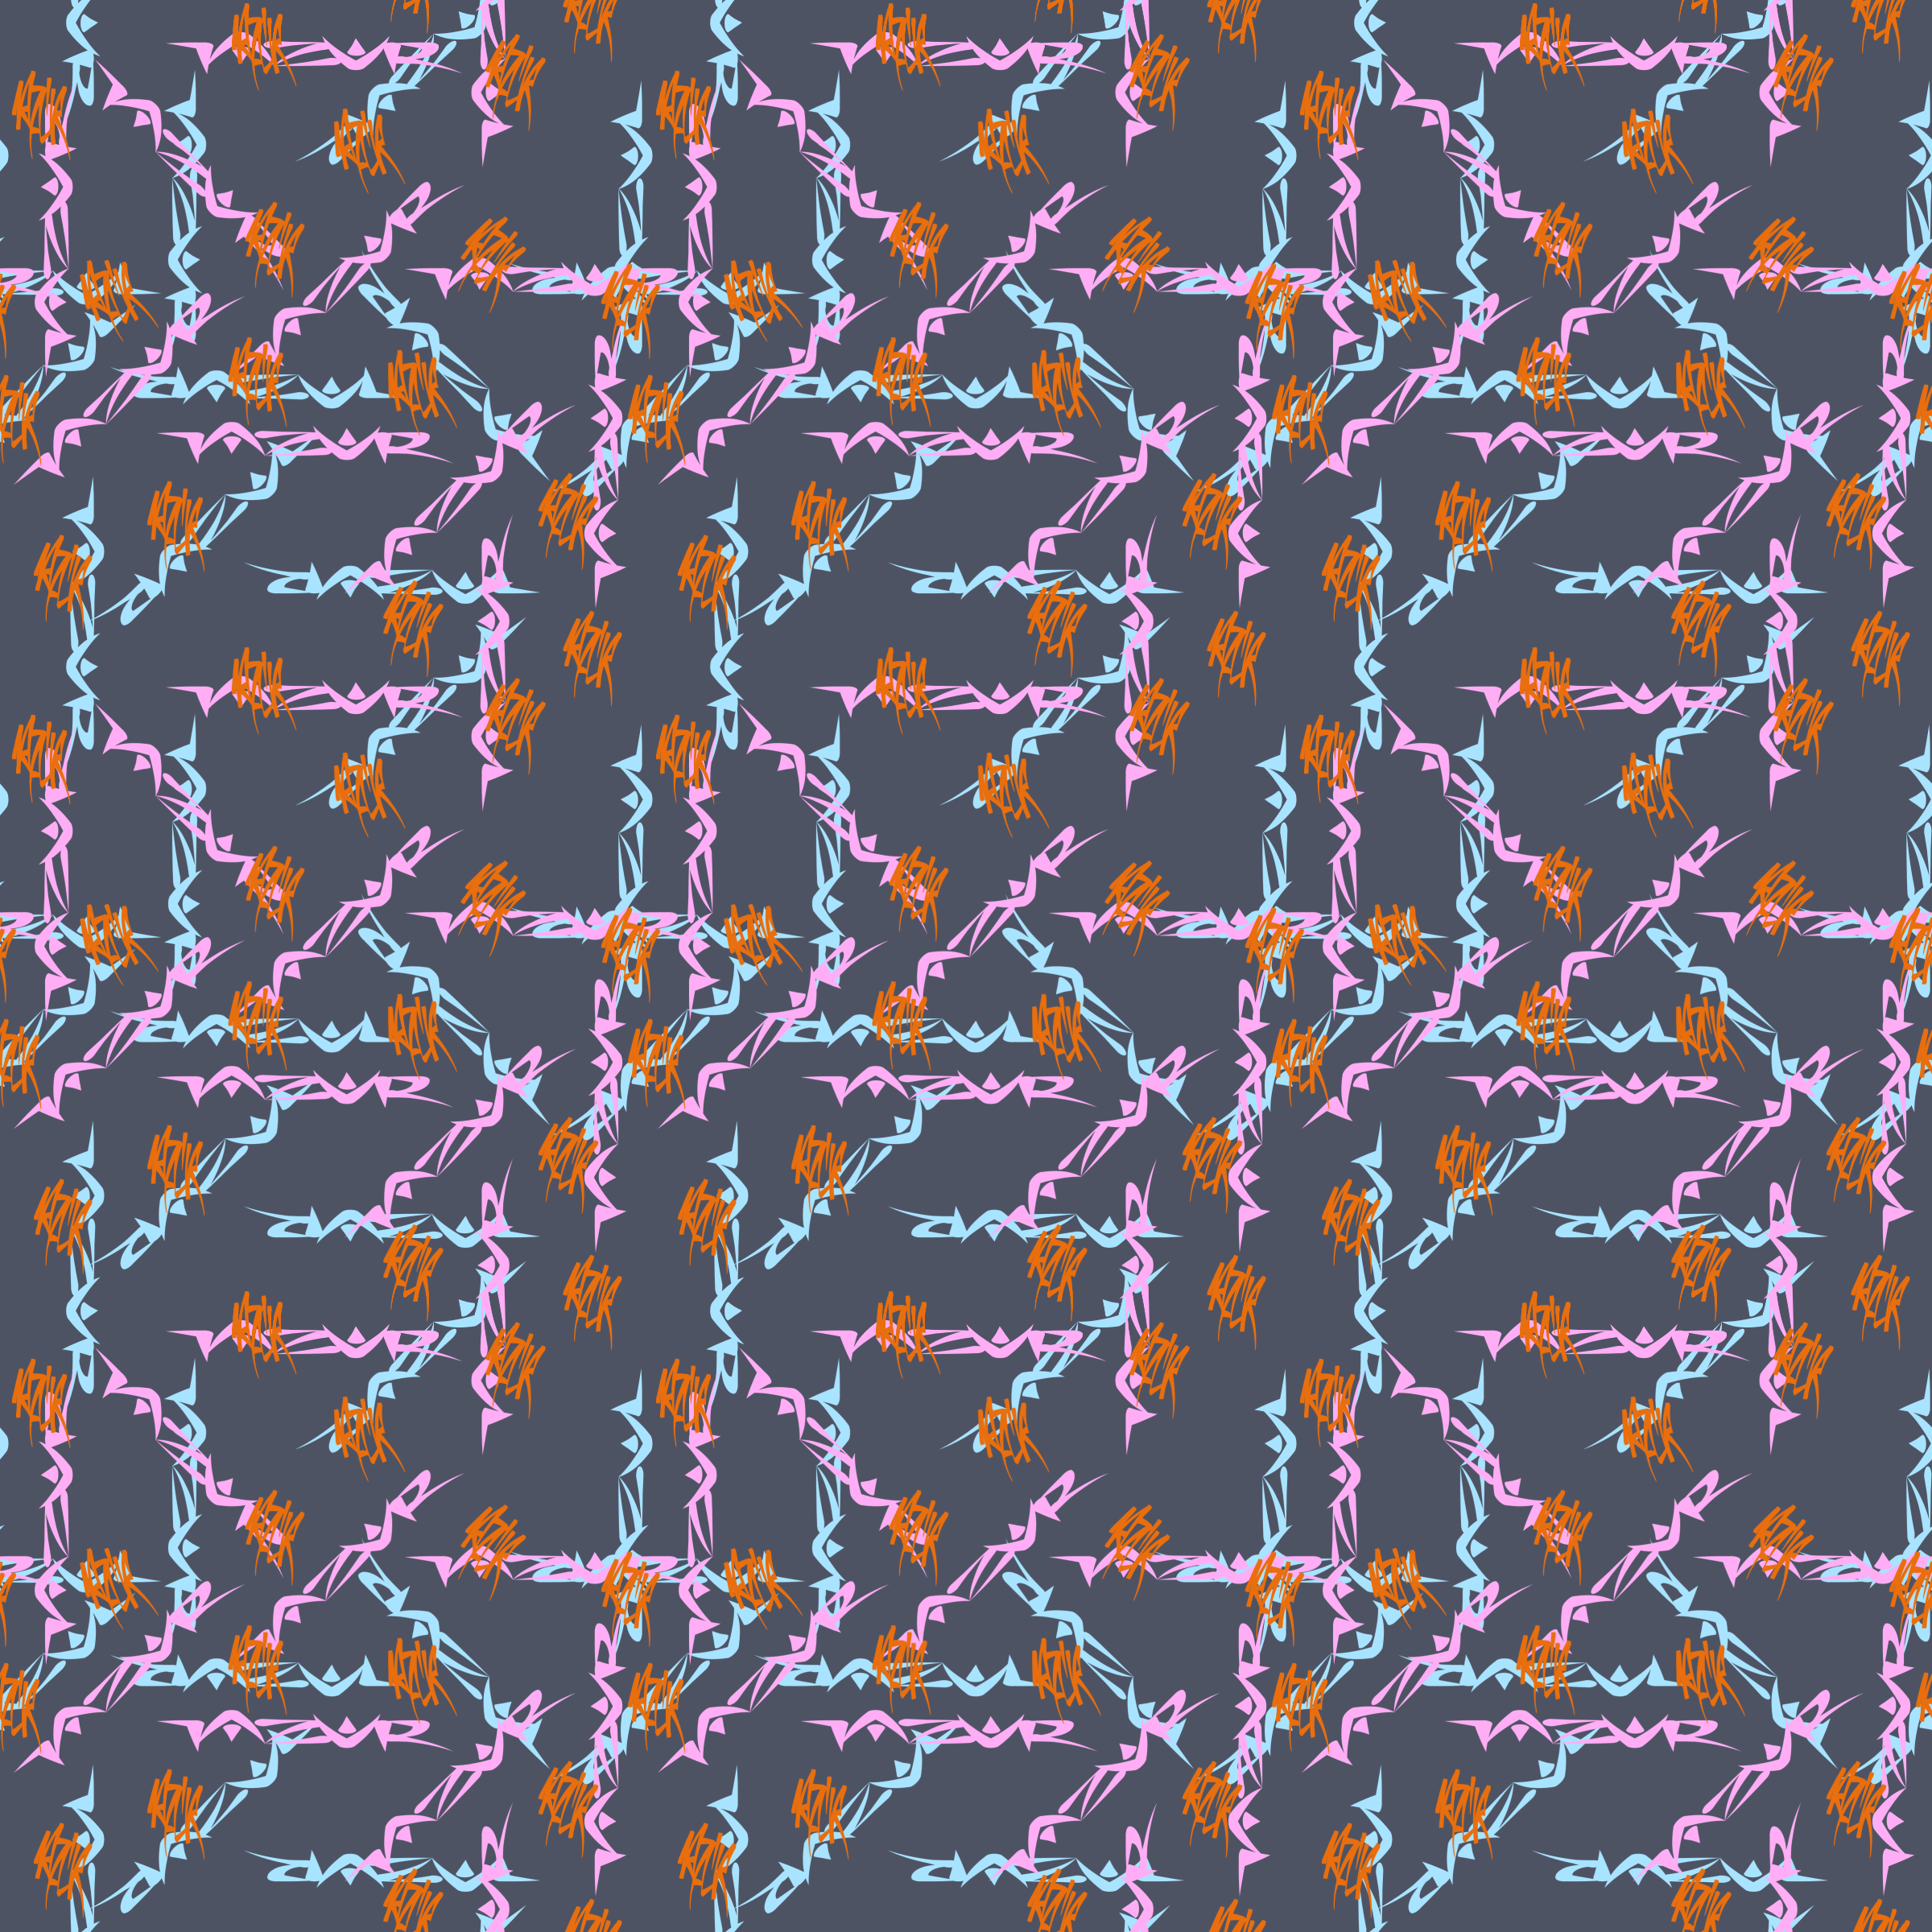 tileable tag pattern 5 by Lazur URH